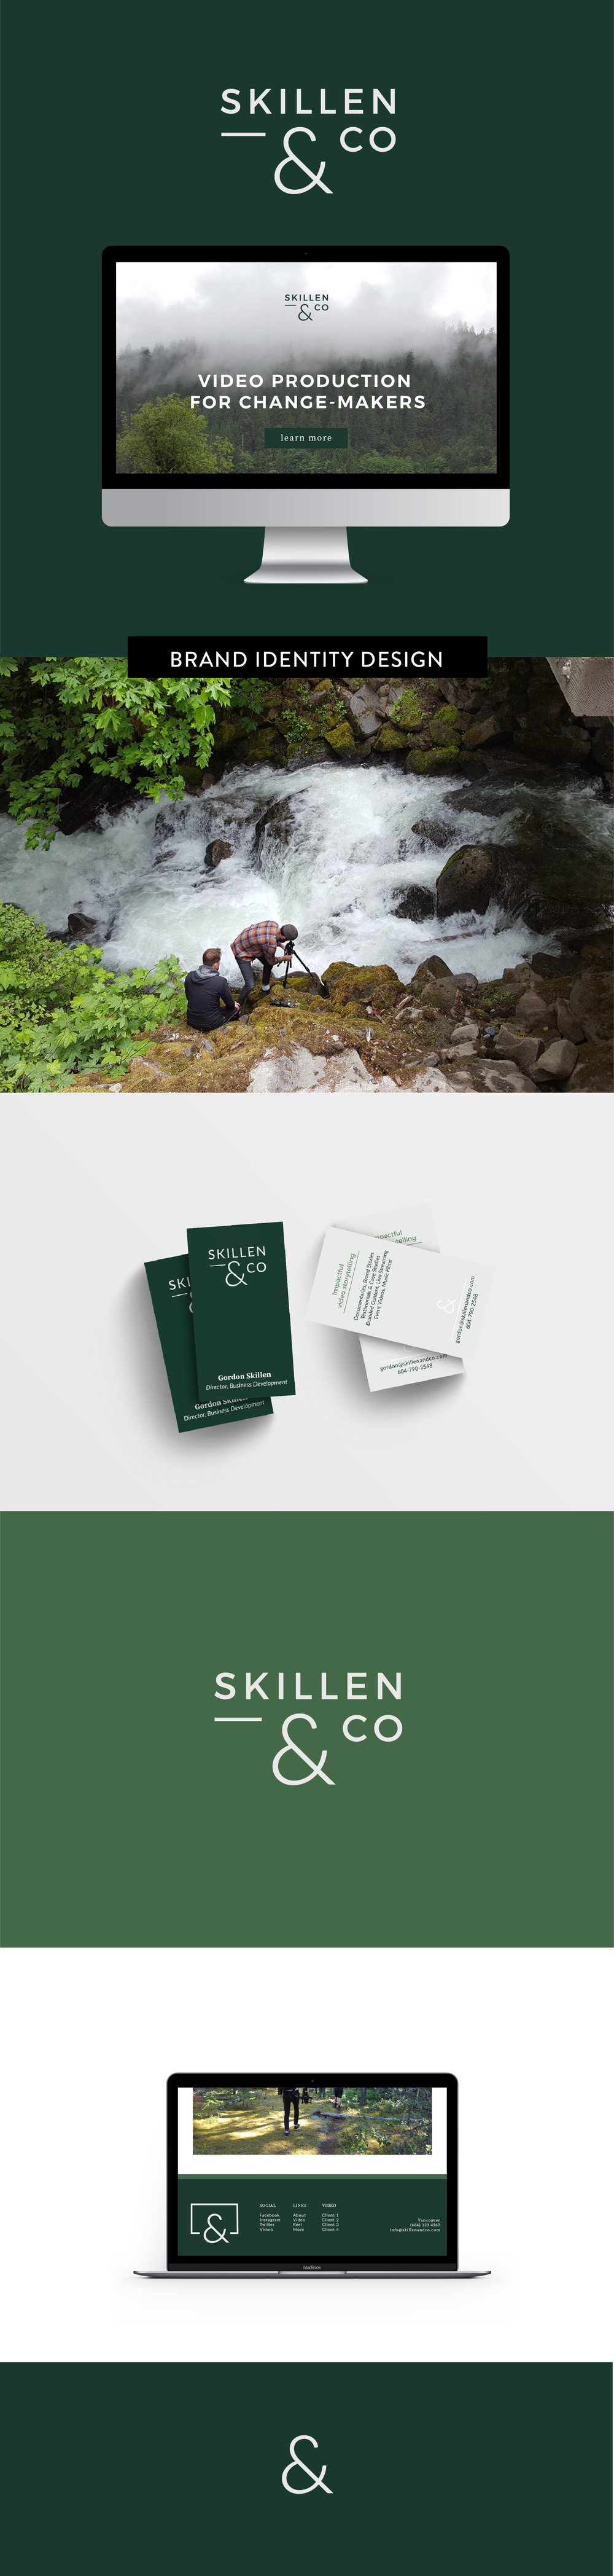 Brand and print design of Skillen & Co by Salt Design Co.